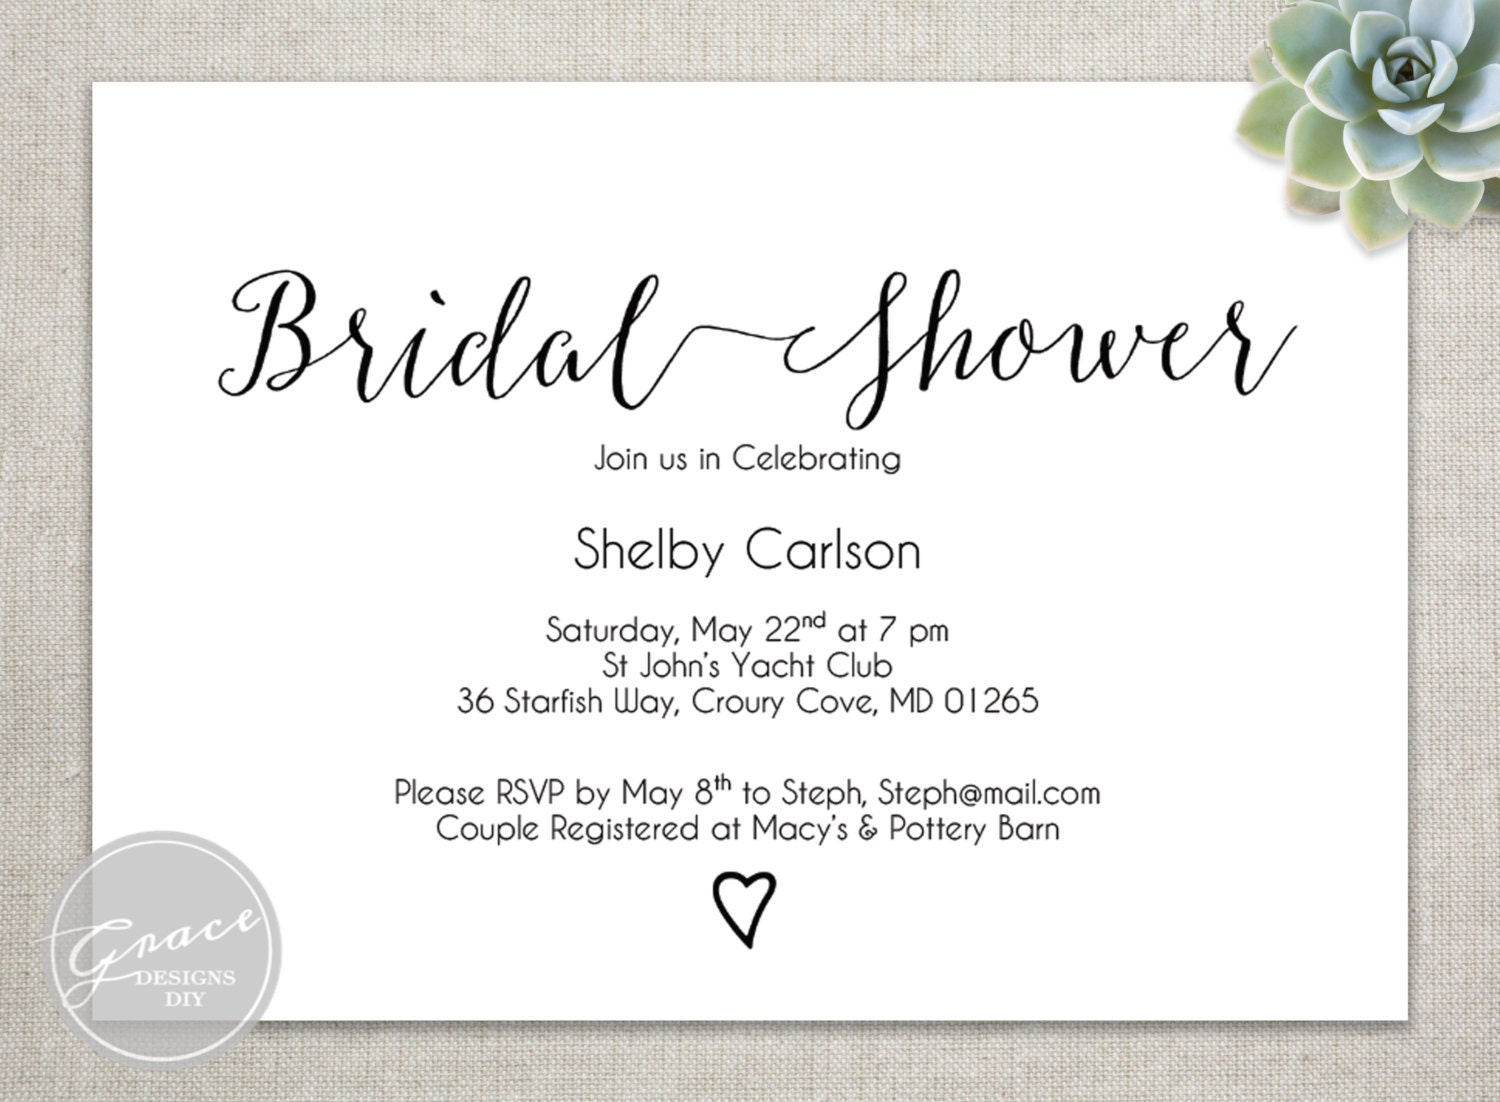 Handwritten Bridal Shower Invitations as good invitations example